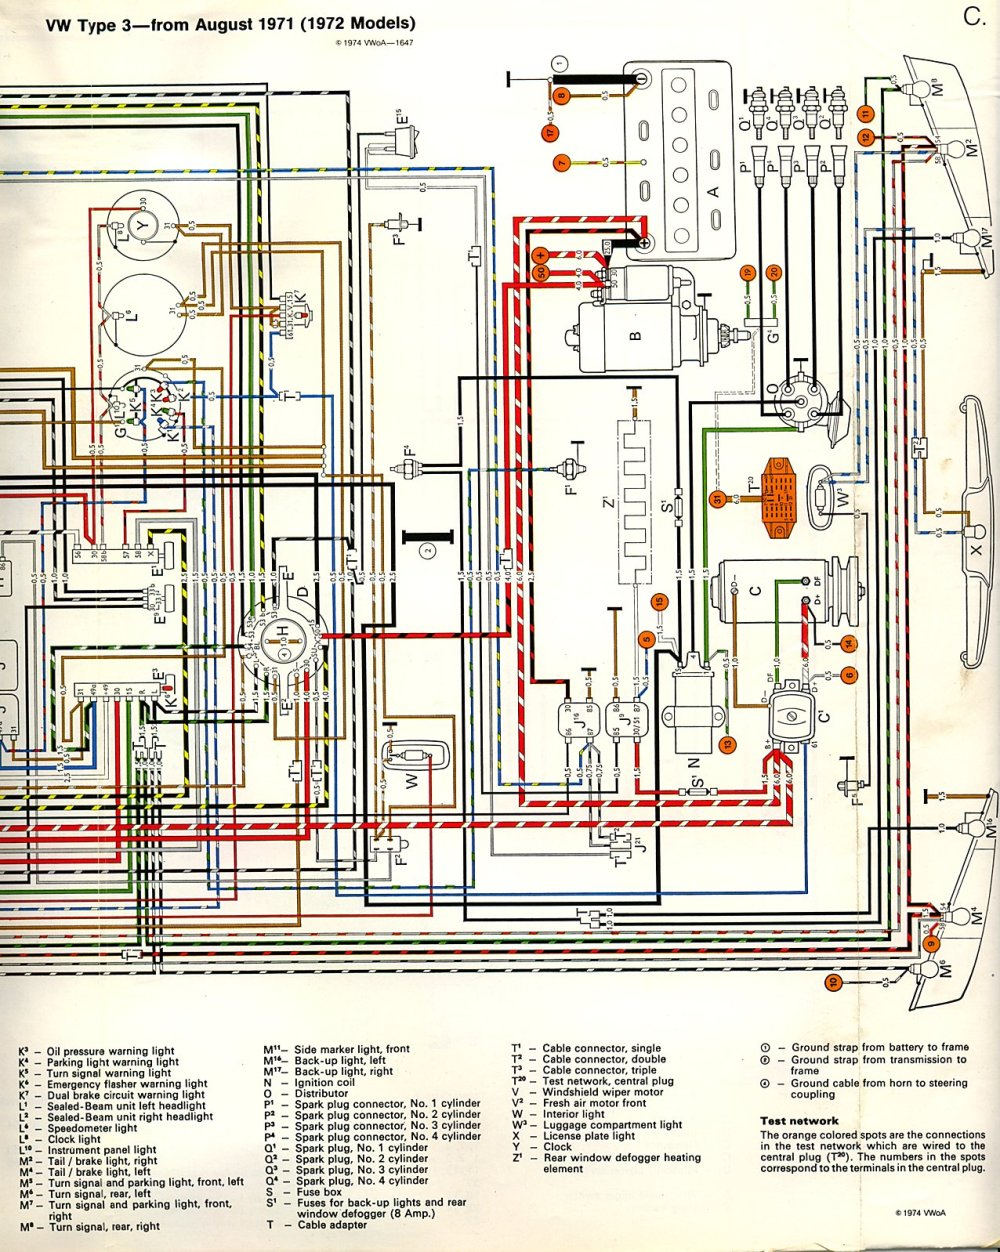 medium resolution of 1973 vw type 3 wiring diagram wiring diagram thesamba com type 3 wiring diagrams1973 vw type